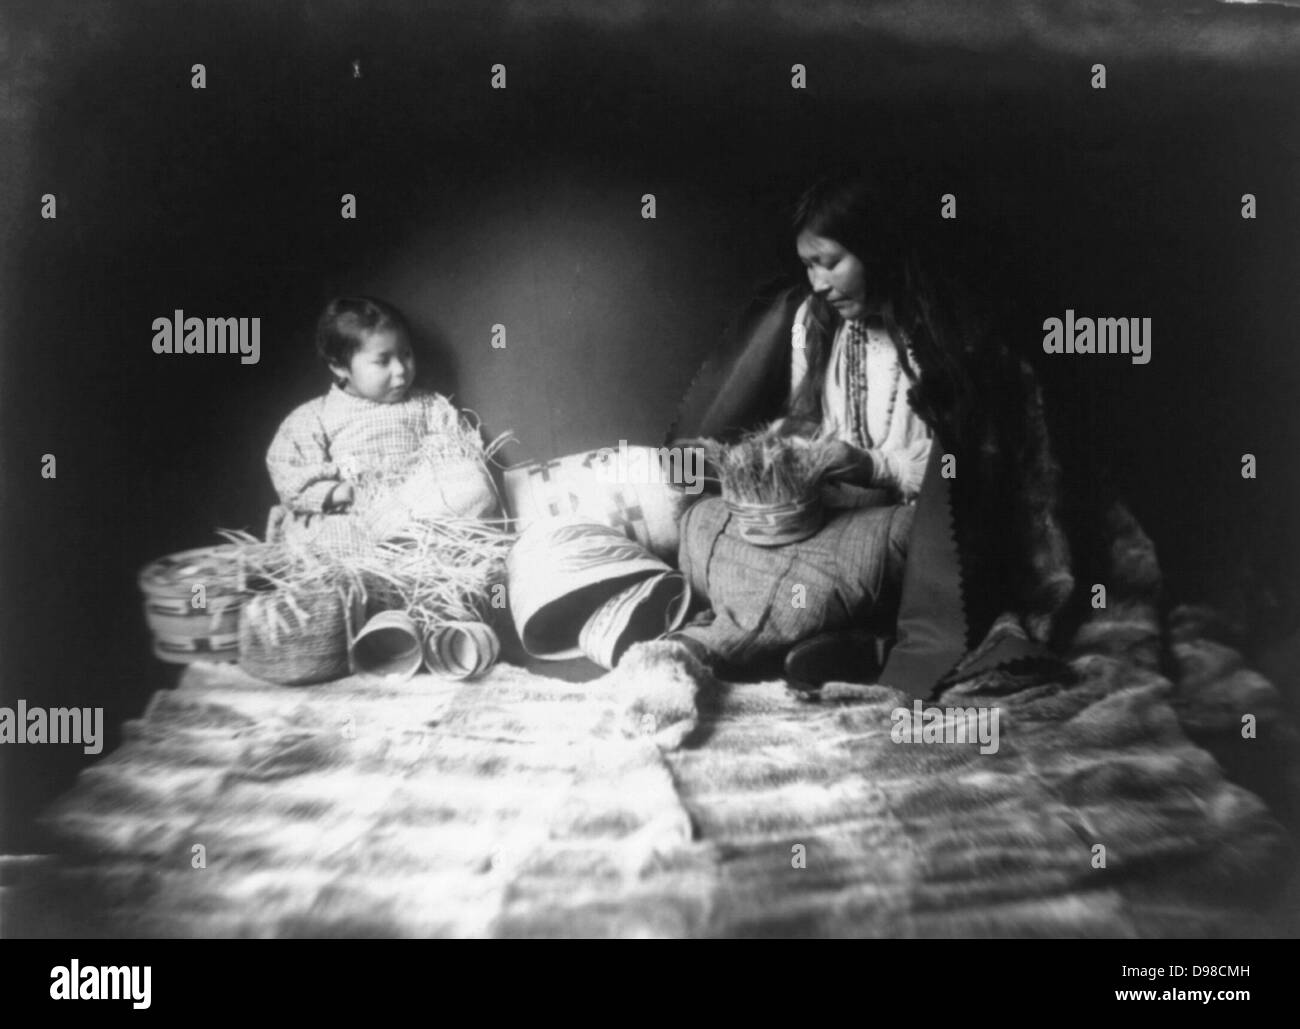 Indian woman and child weaving baskets. - Stock Image